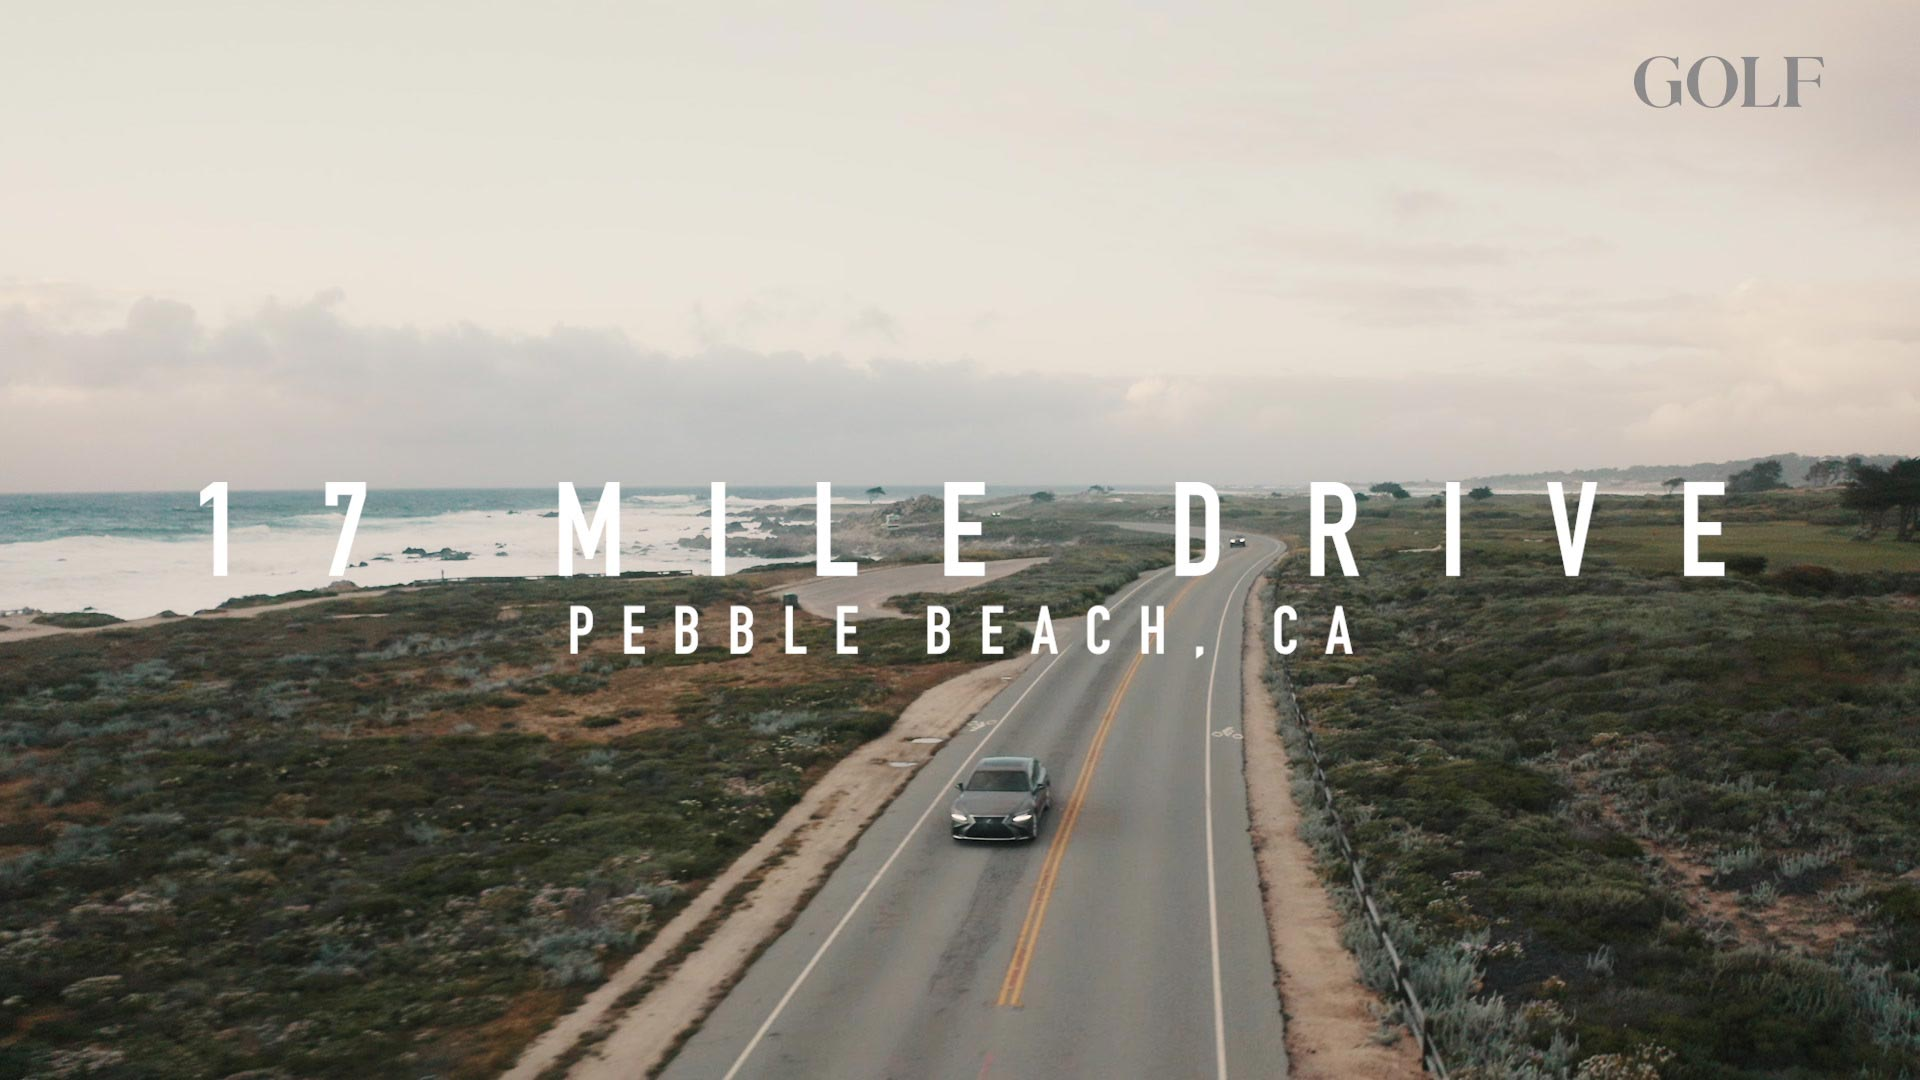 17 Mile Drive | Pebble Beach, CA - Golf